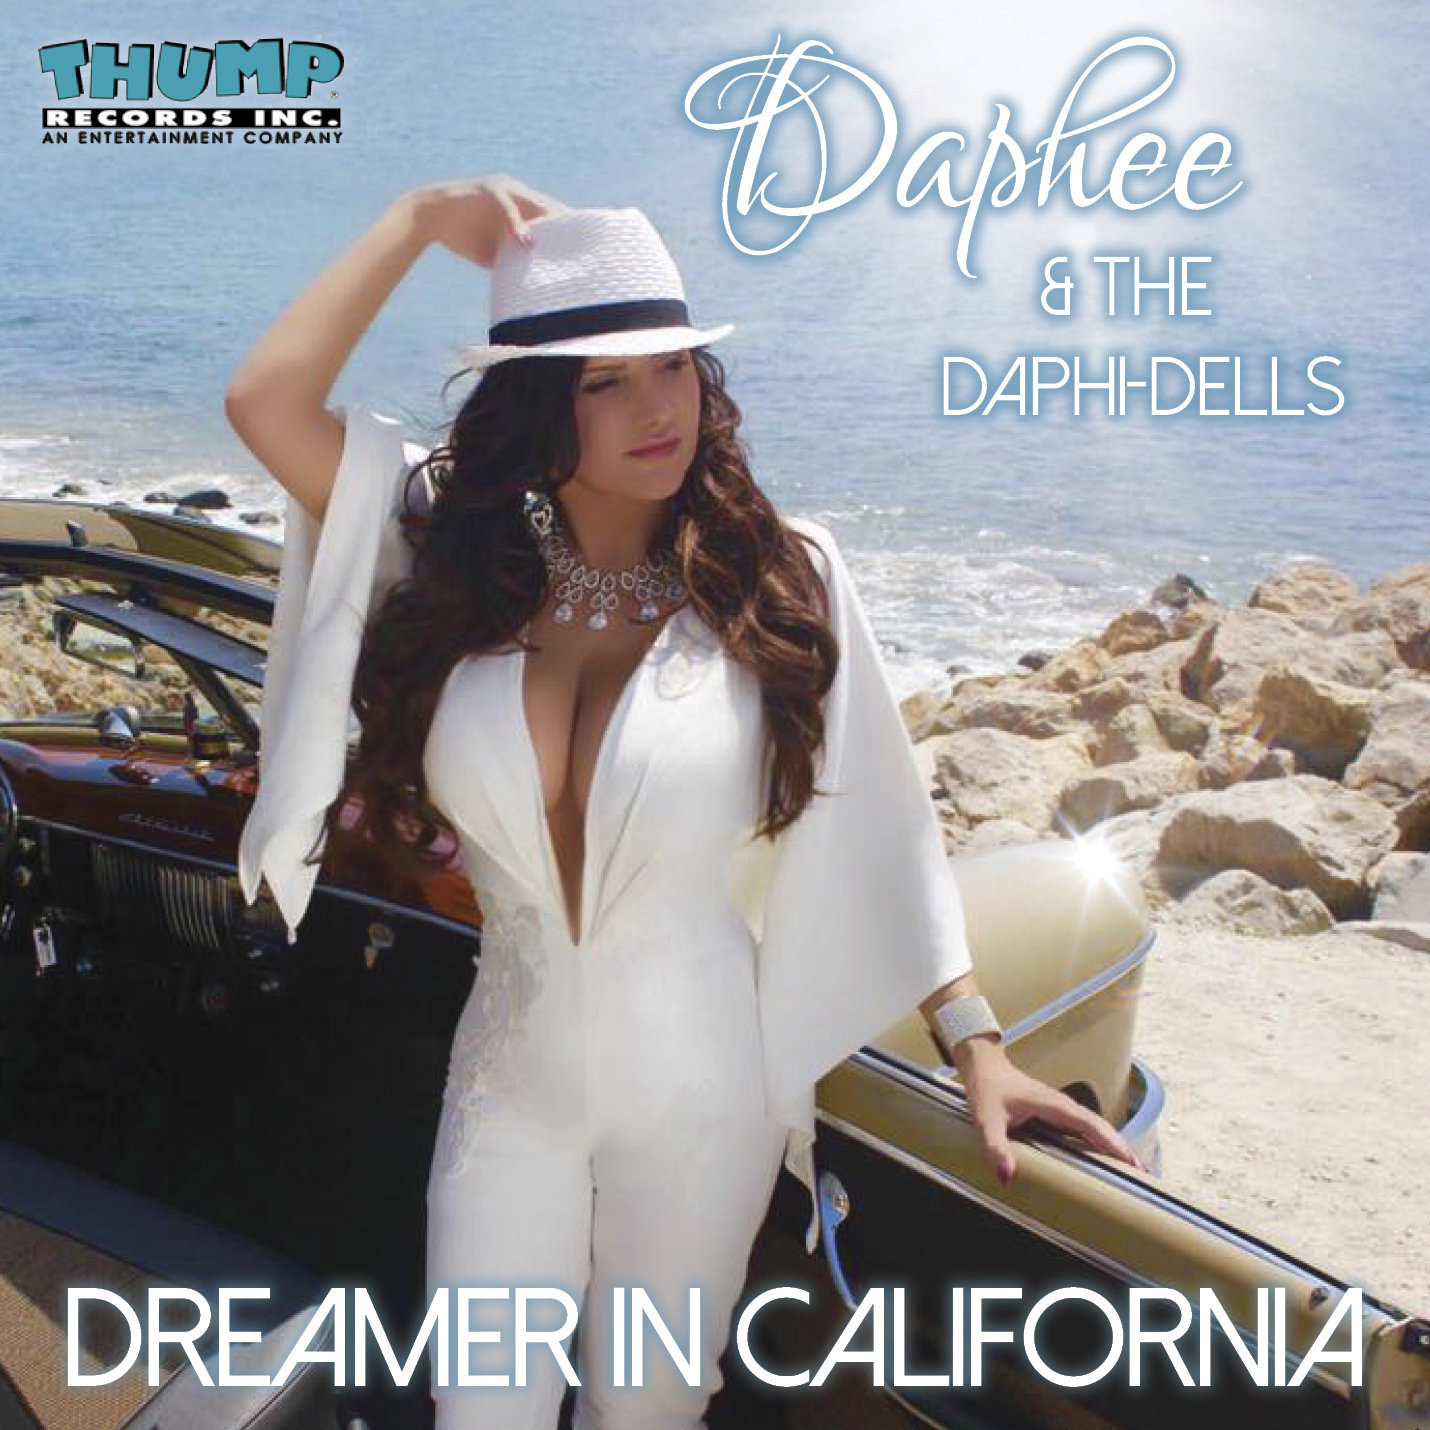 Dreamer in California CDDIC